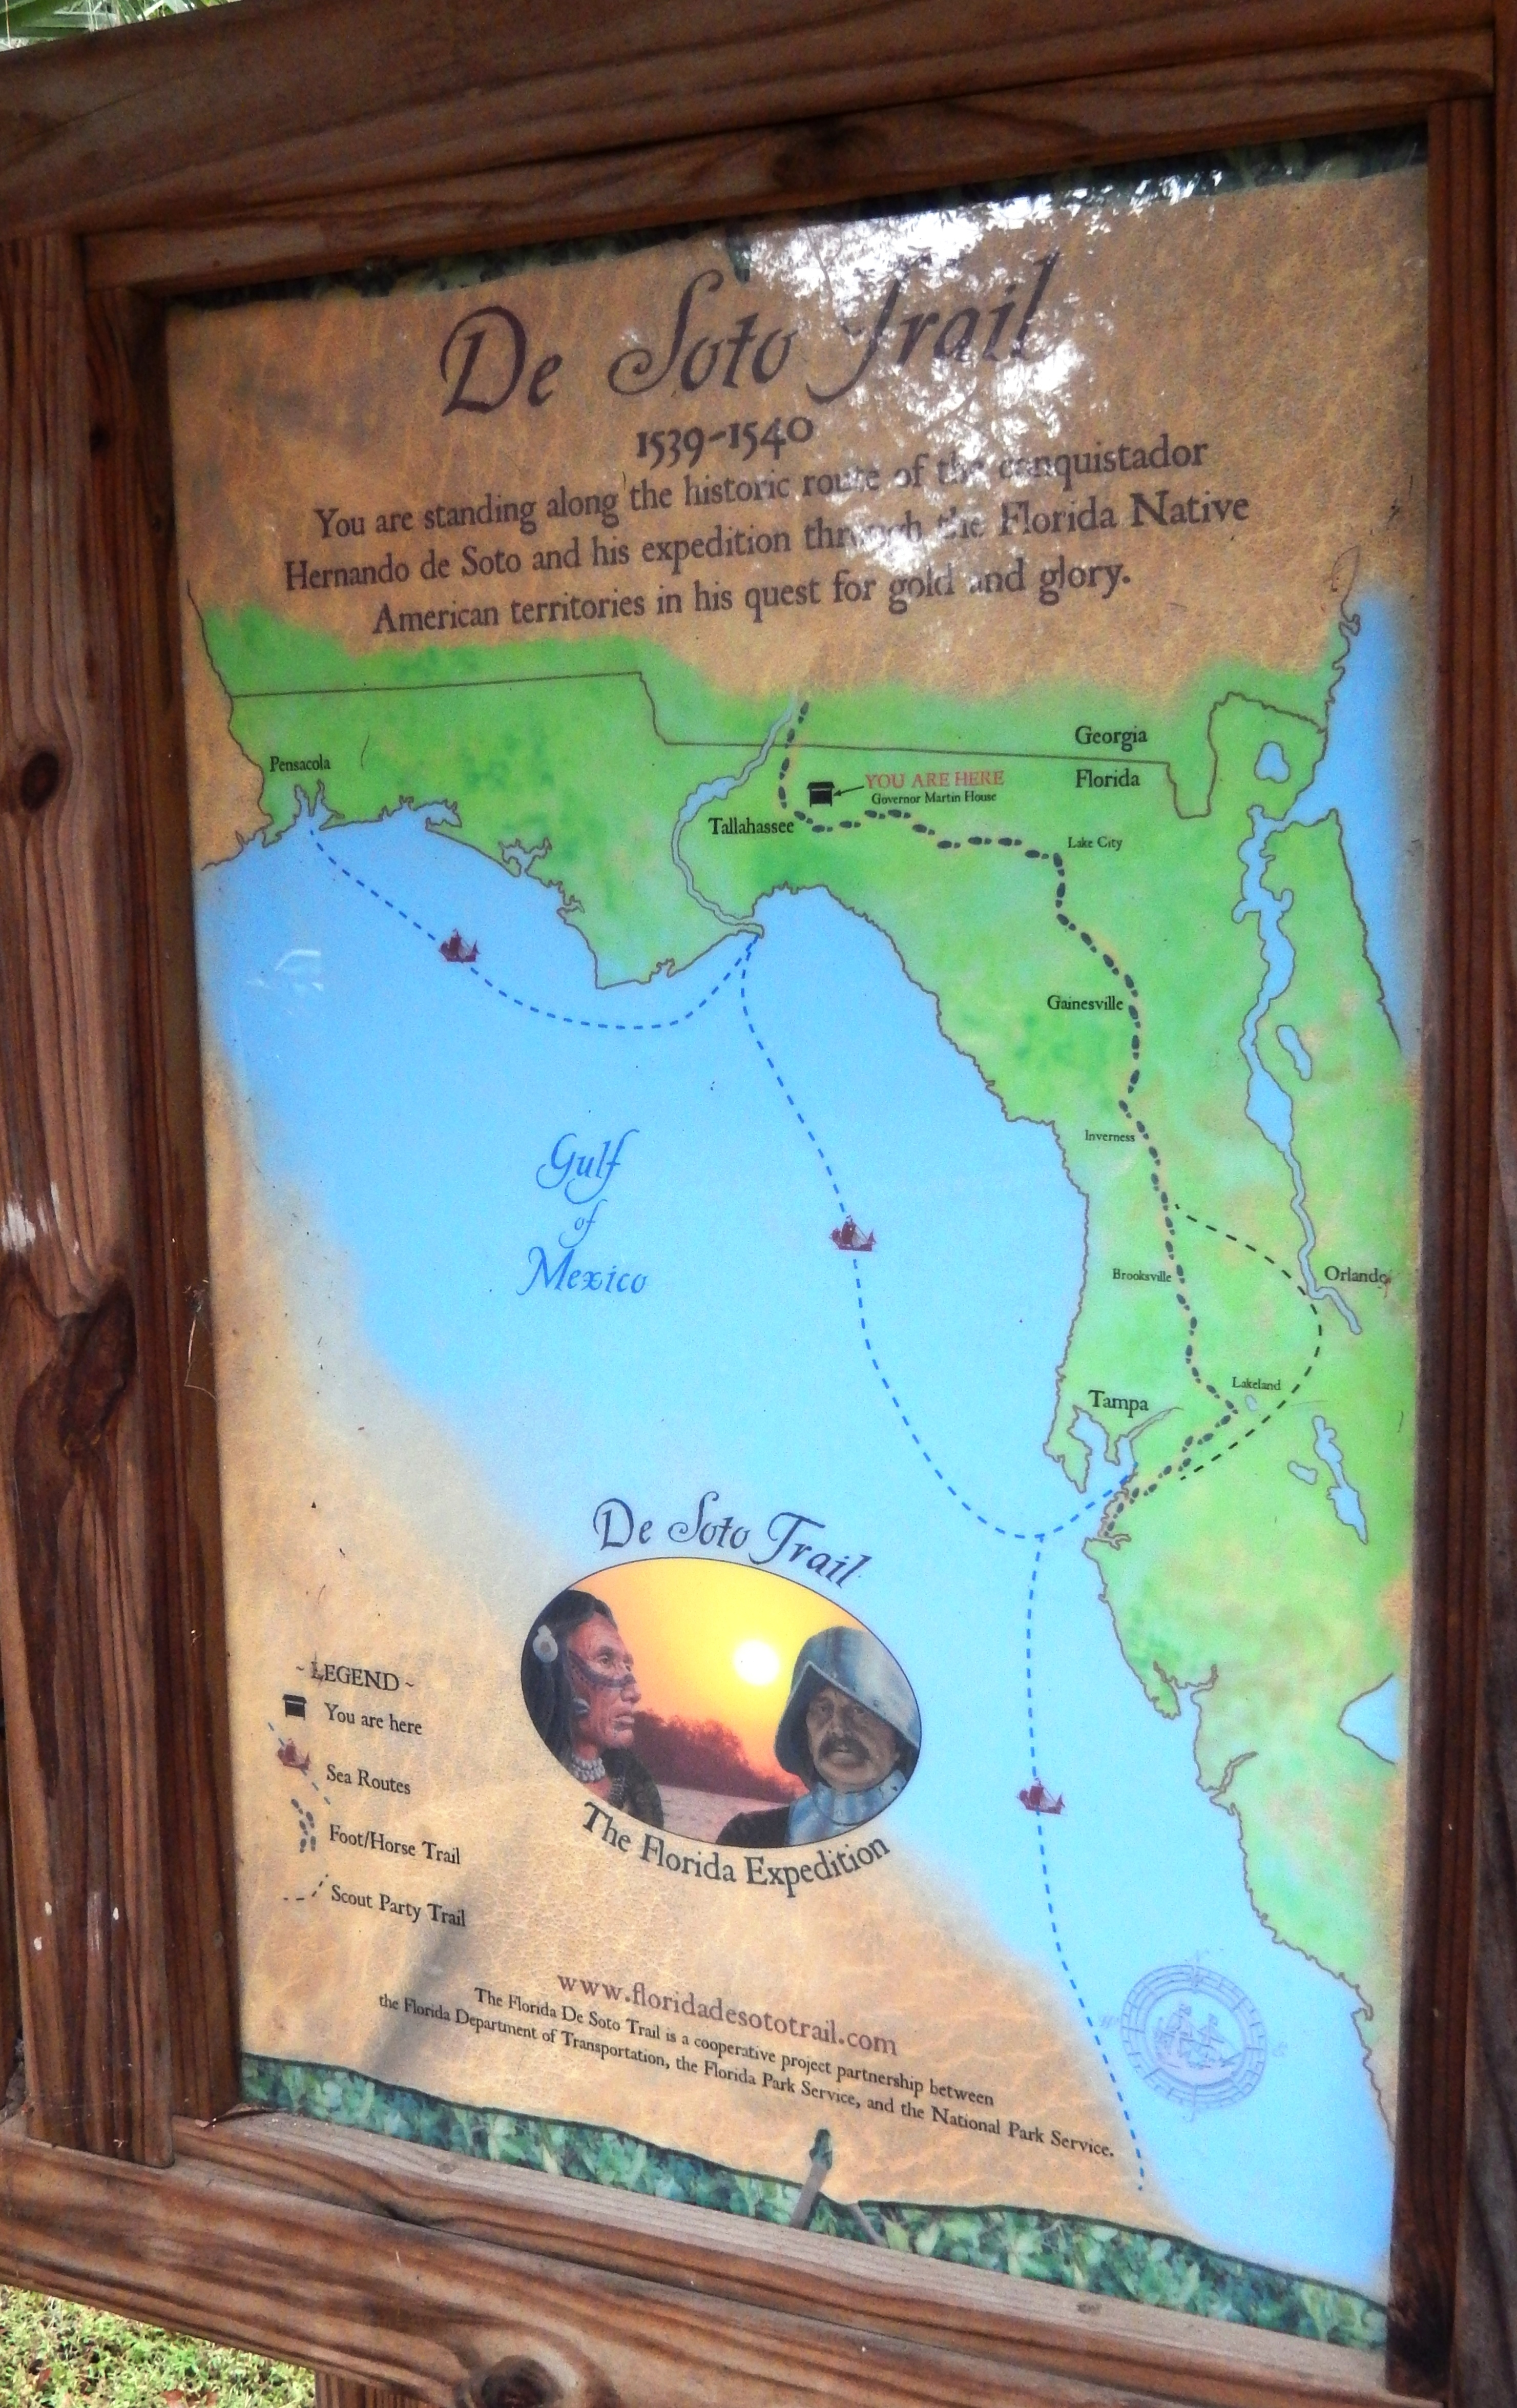 Florida De Soto Trail Map (<i>left-most of three panels in the kiosk</i>)